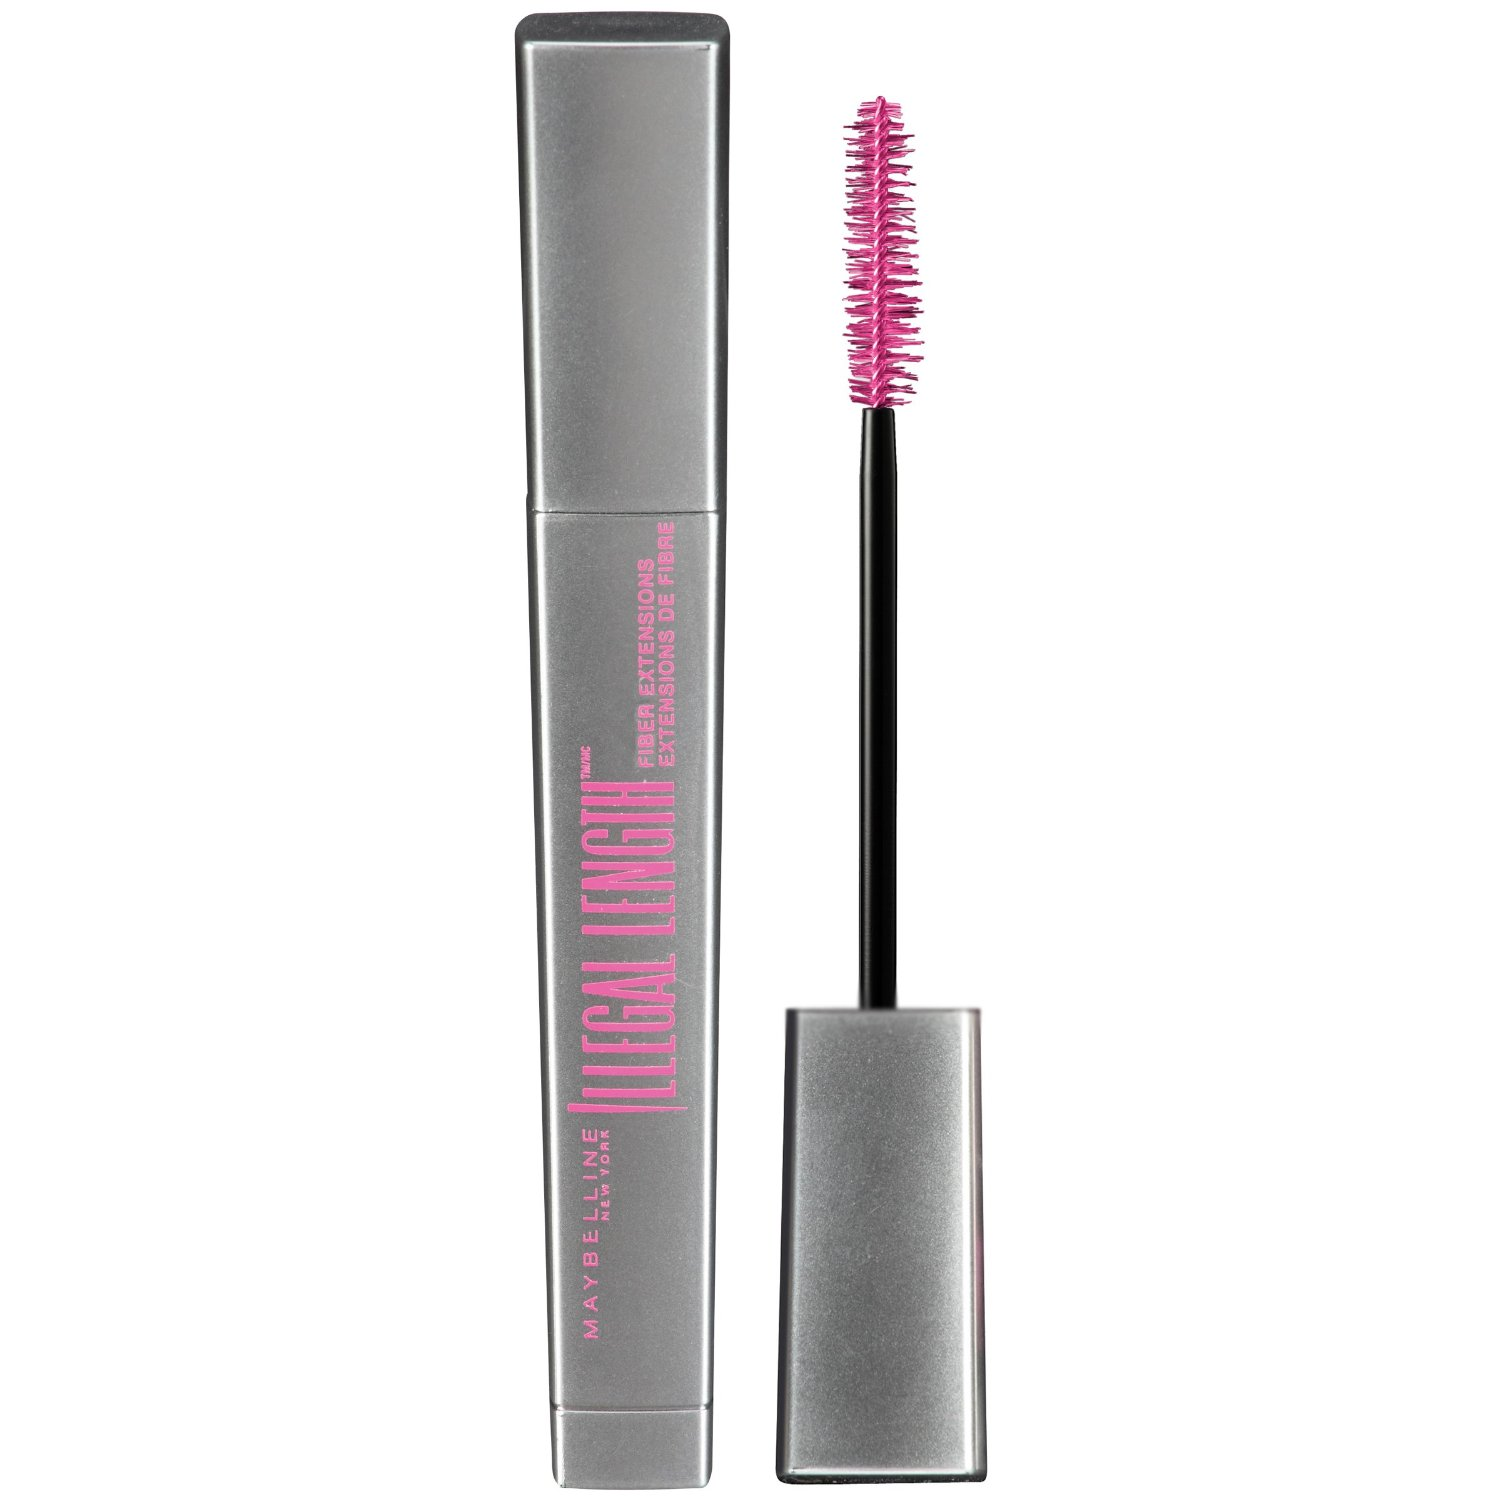 MAYBELLINE New York Illegal Length Fiber Extensions Washable Mascara, Blackest Black, 0.22 Ounce